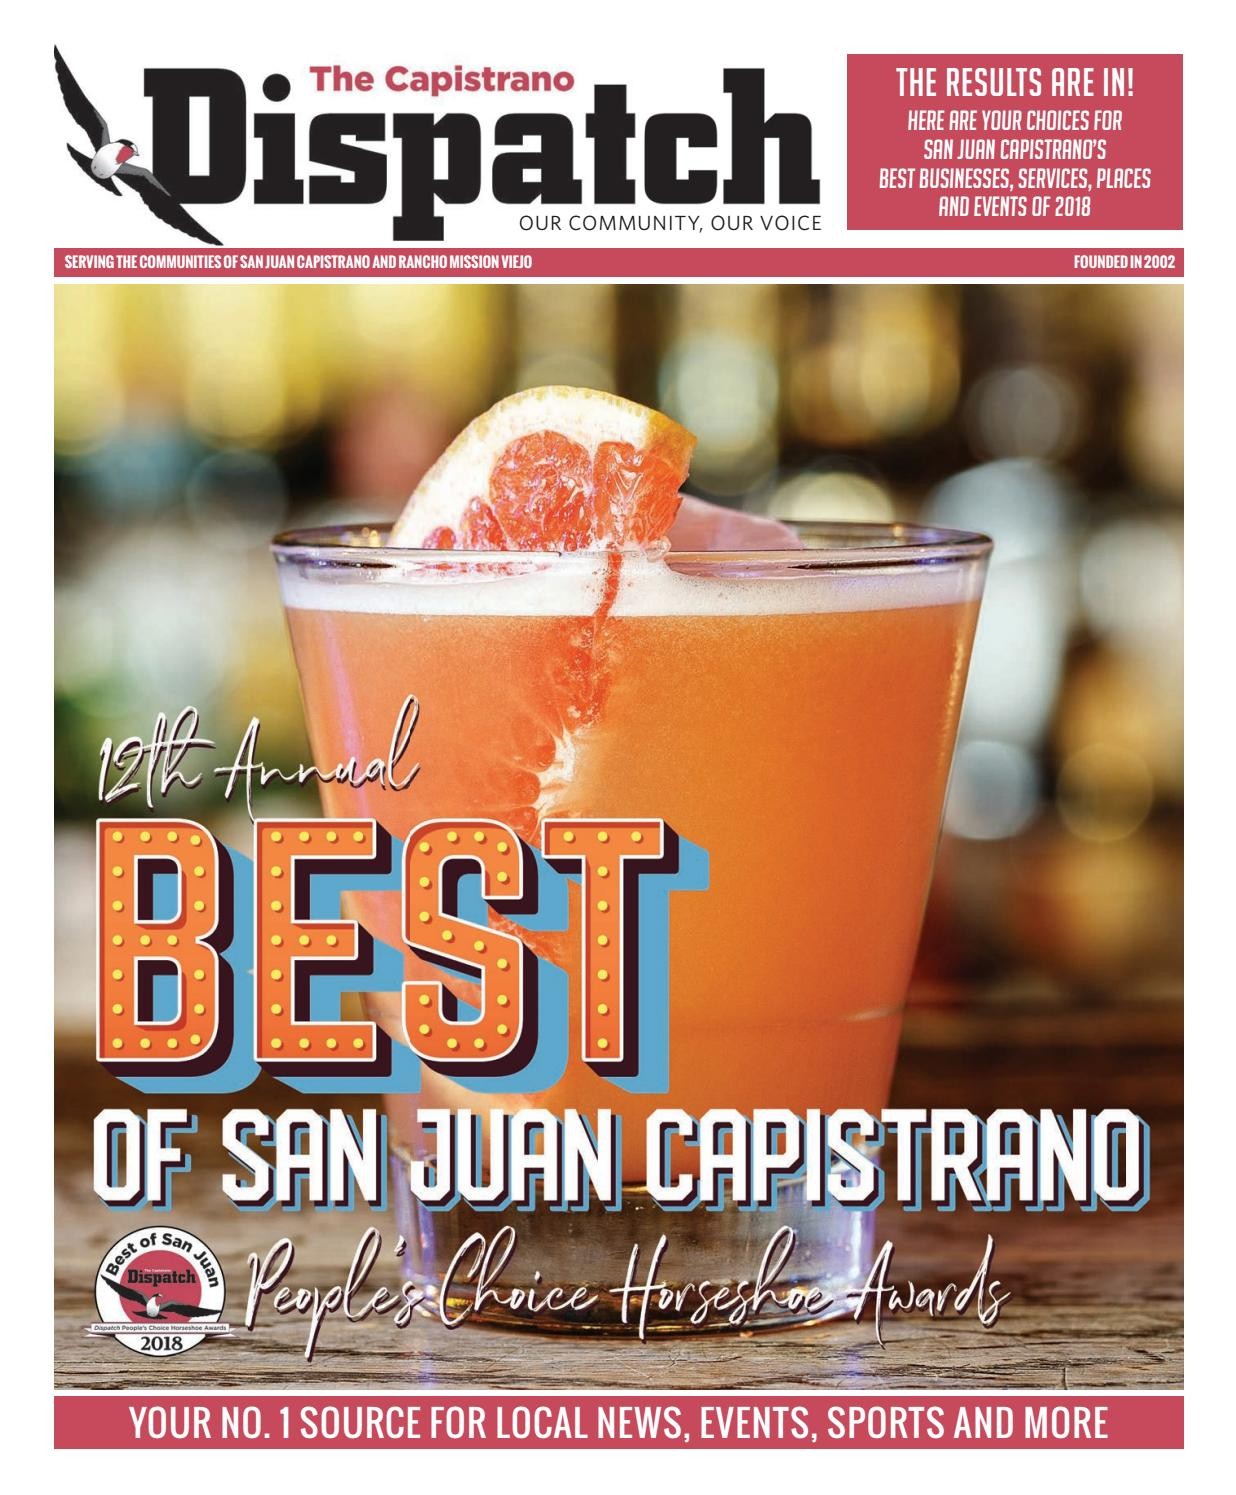 12th Annual Best Of San Juan Capistrano People S Choice Horseshoe Awards By The Capistrano Dispatch Issuu